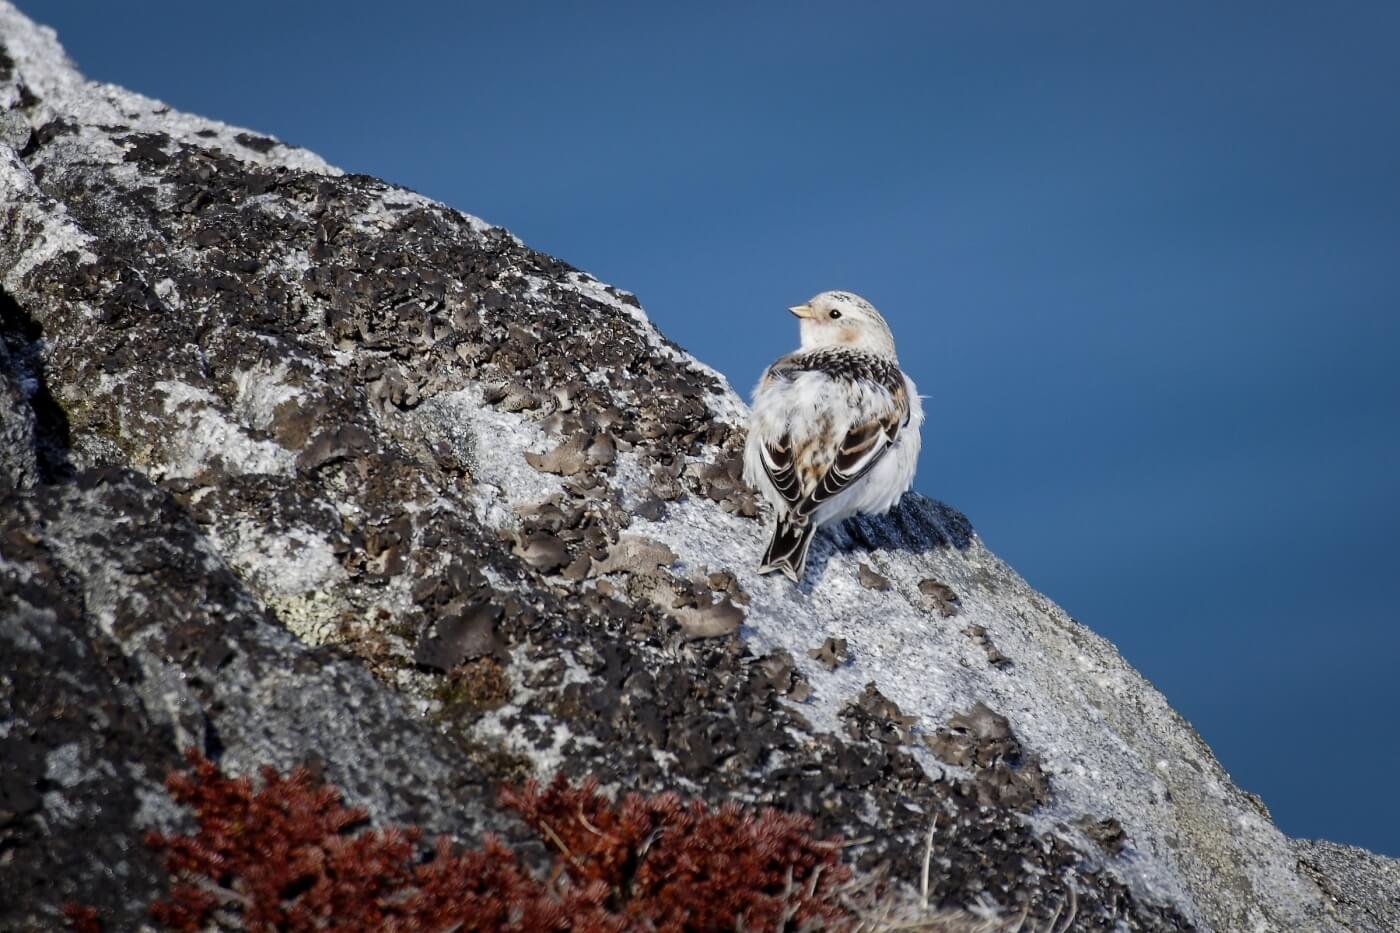 A snow bunting on a cliff in Greenland. Photo by Aqqa Rosing Asvid, Visit Greenland